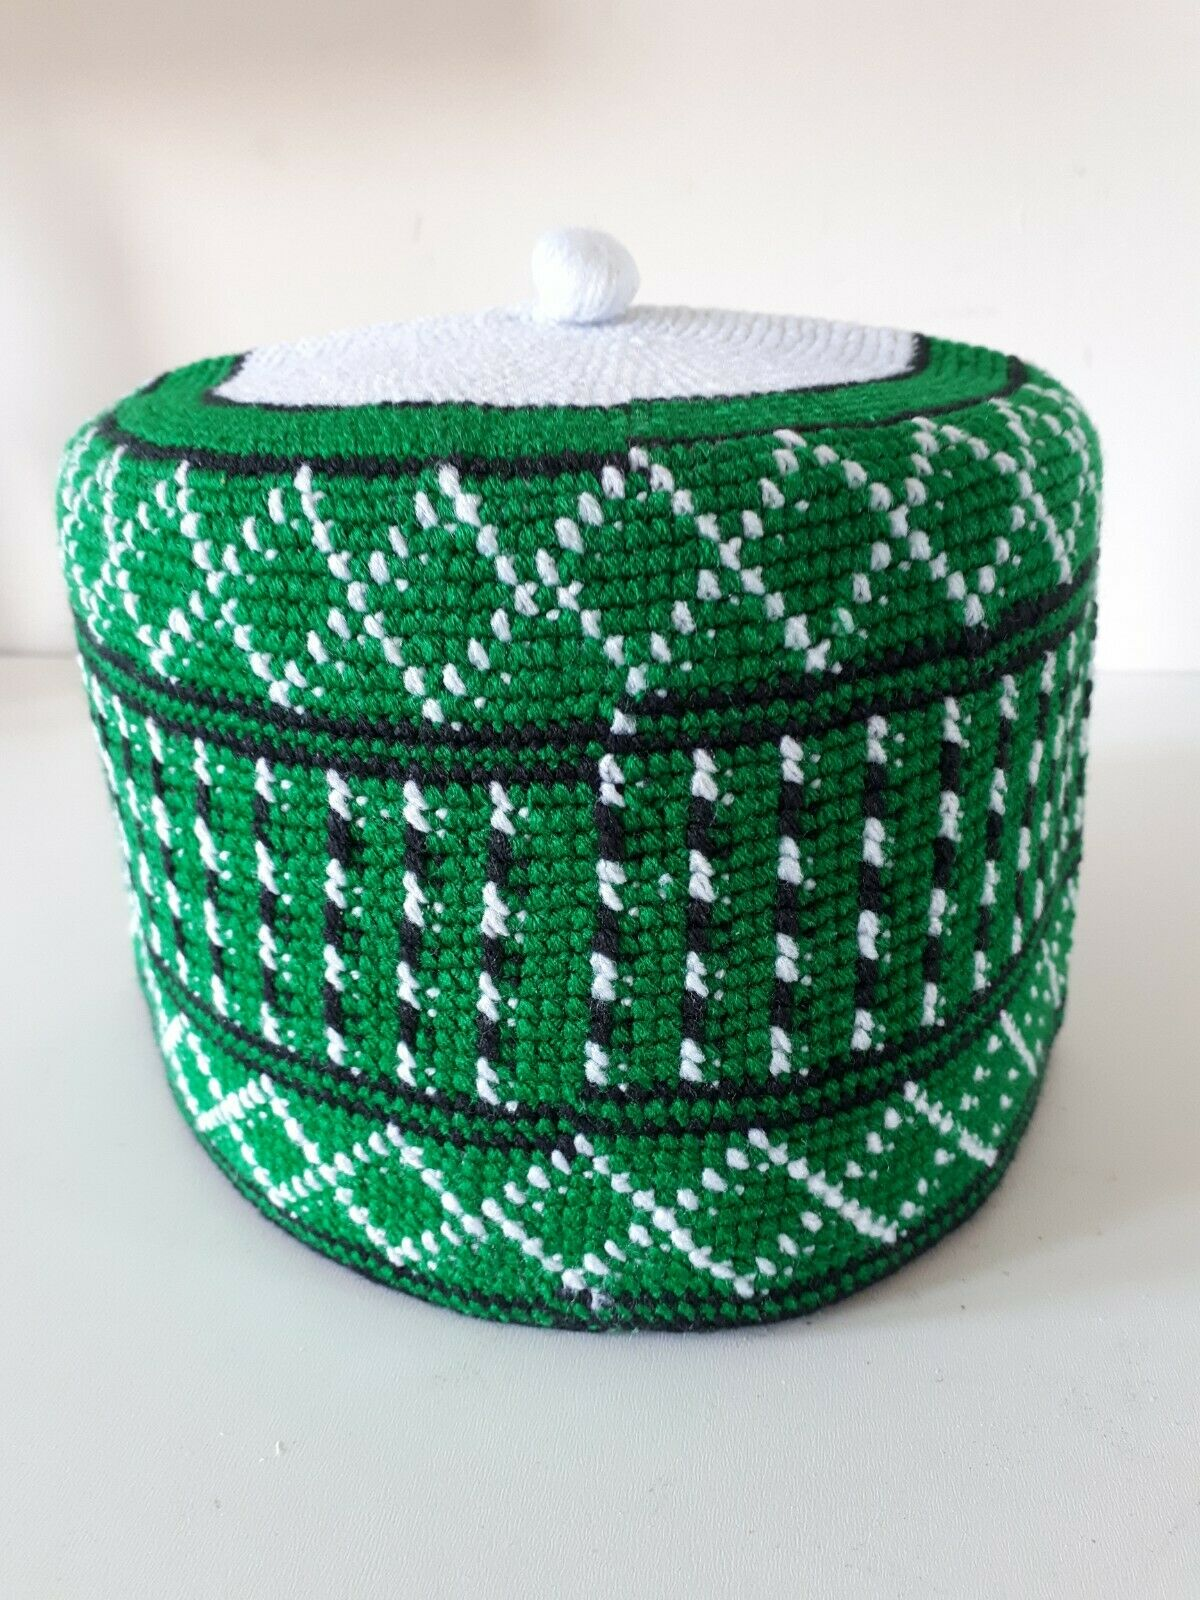 NEW NIGERIAN TRADITIONALLY HAND WOVEN HAUSA HAT SIZE 23in GREEN